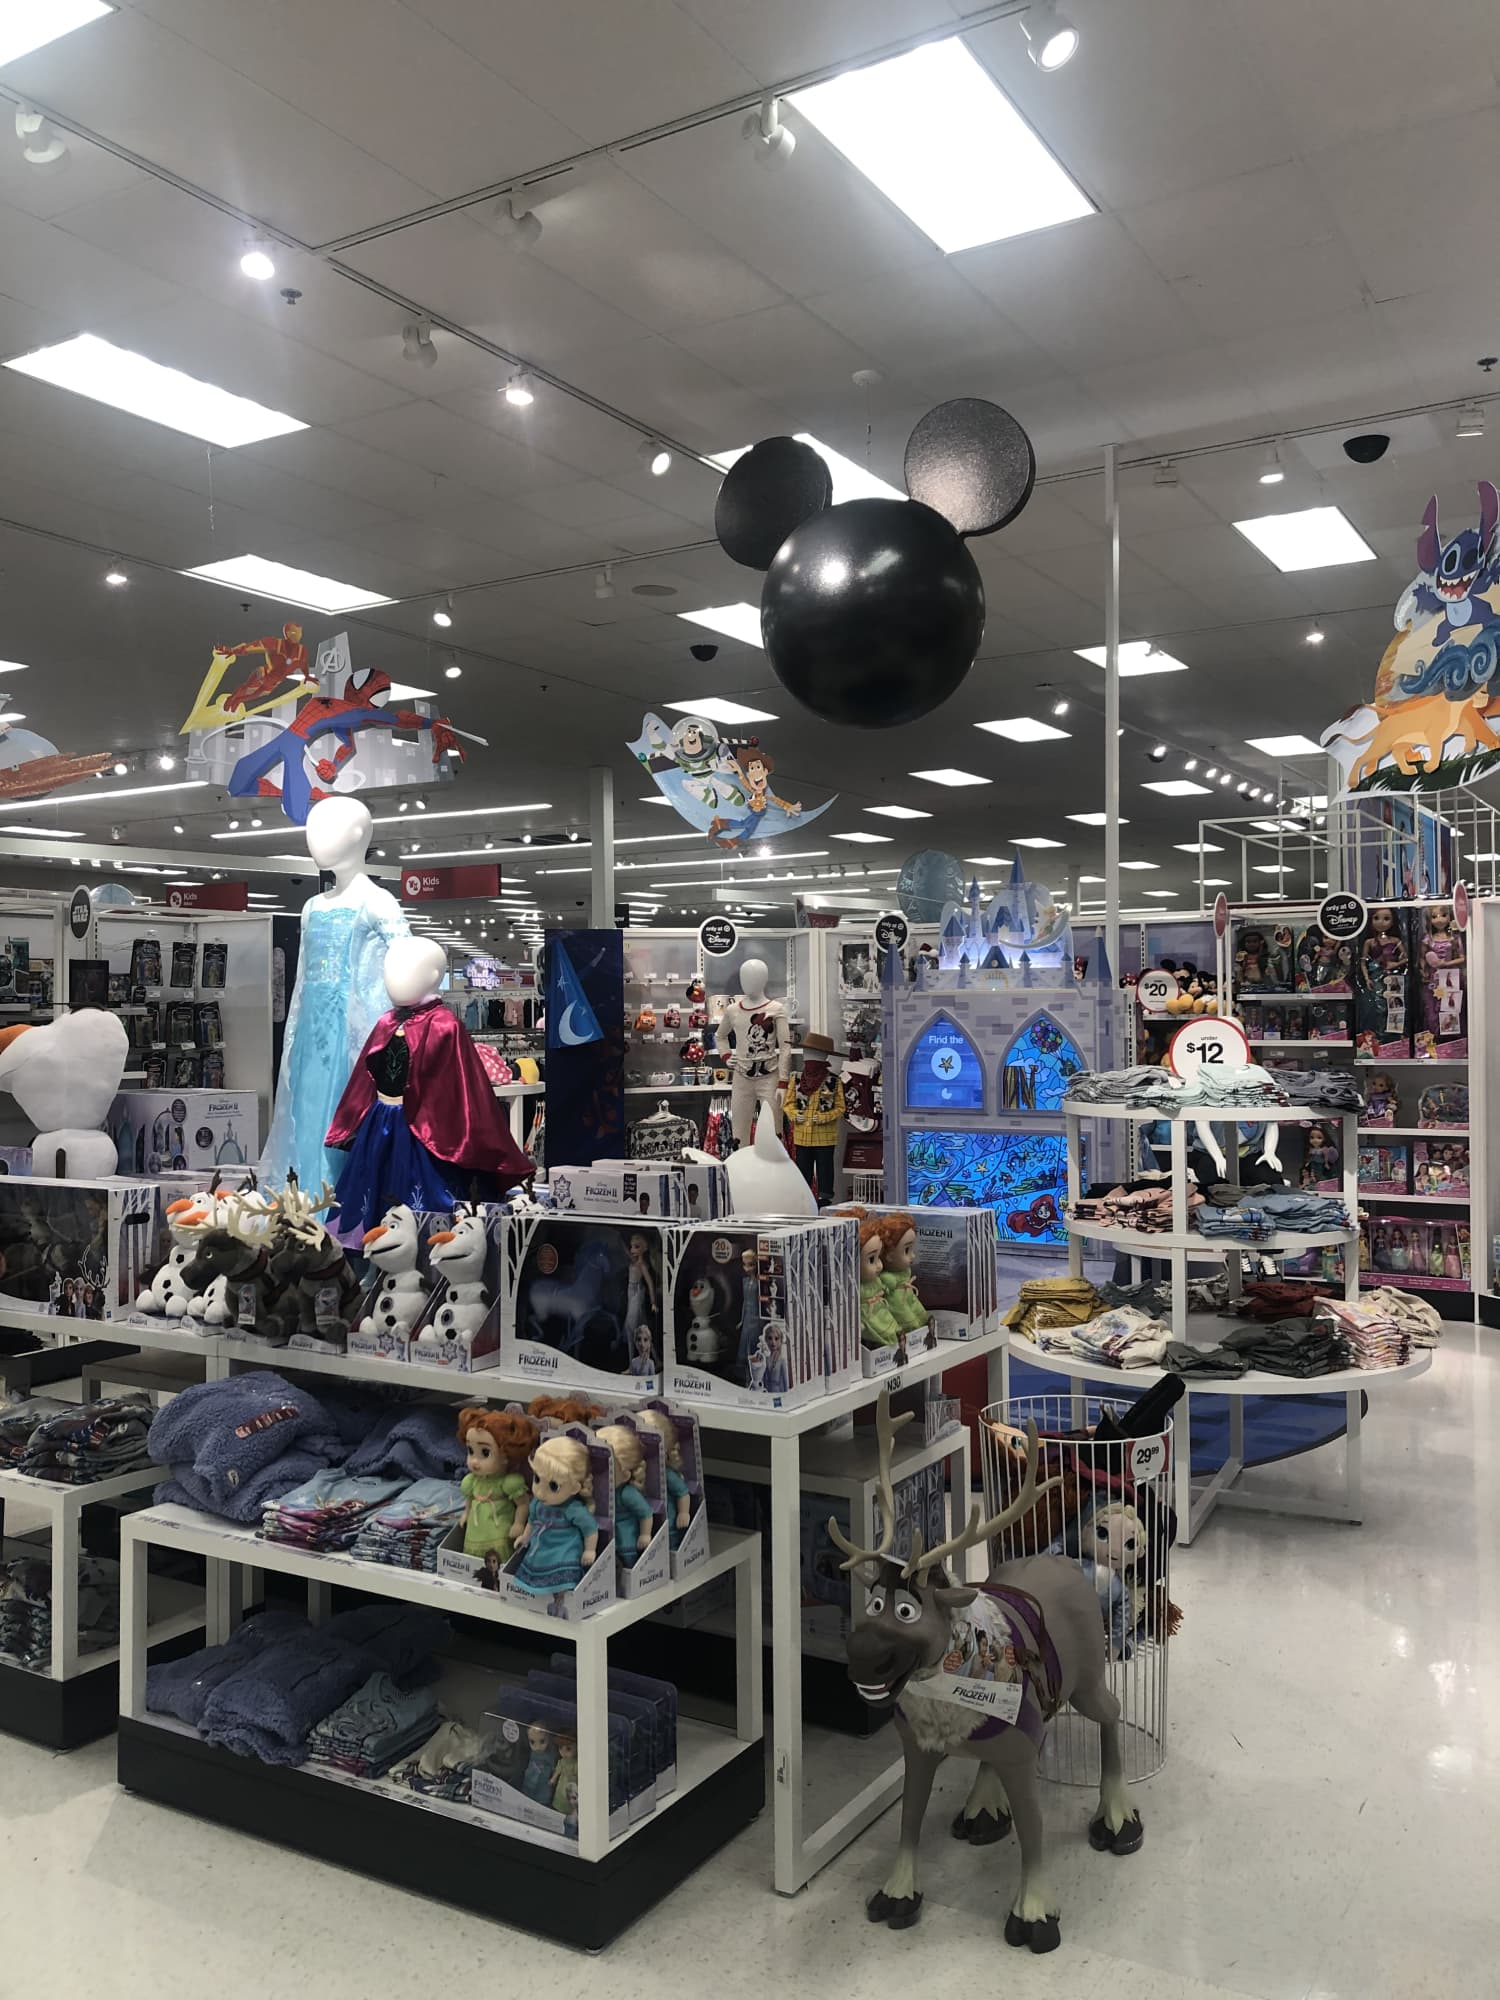 I Visited a Disney Store Inside Target, and It Was So Magical